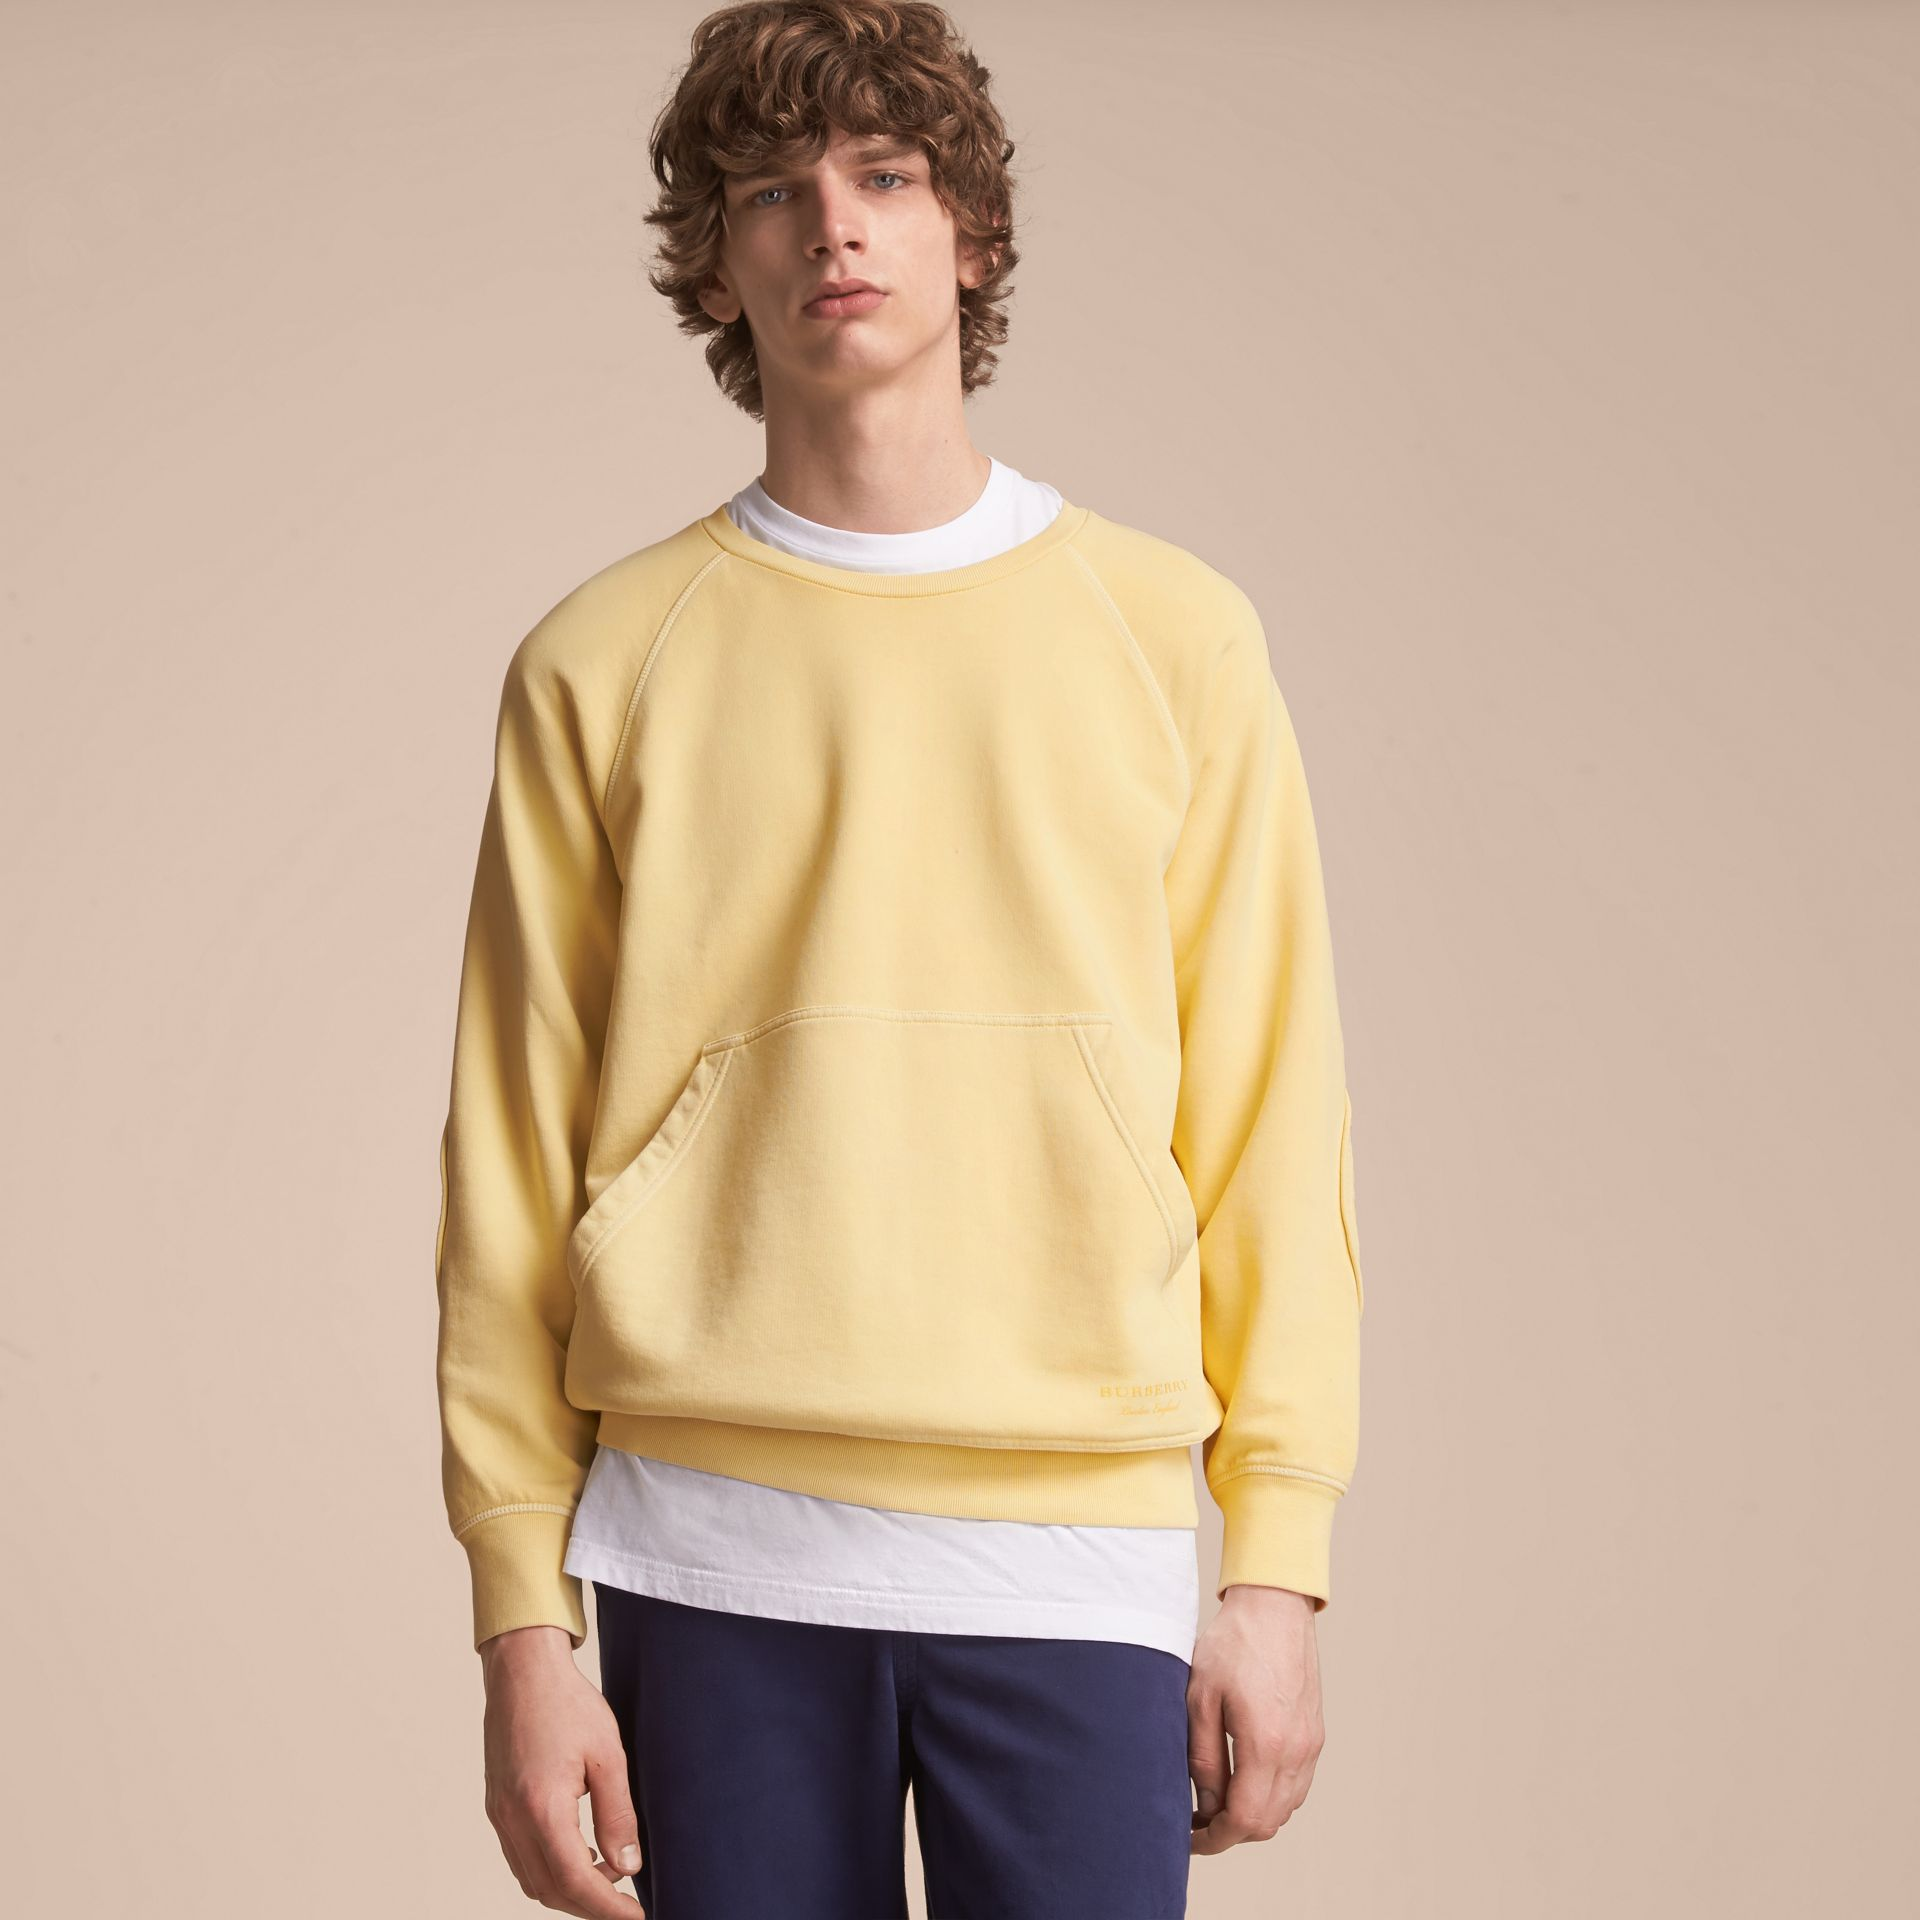 Unisex Pigment-dyed Cotton Oversize Sweatshirt in Pale Yellow - Men | Burberry - gallery image 5